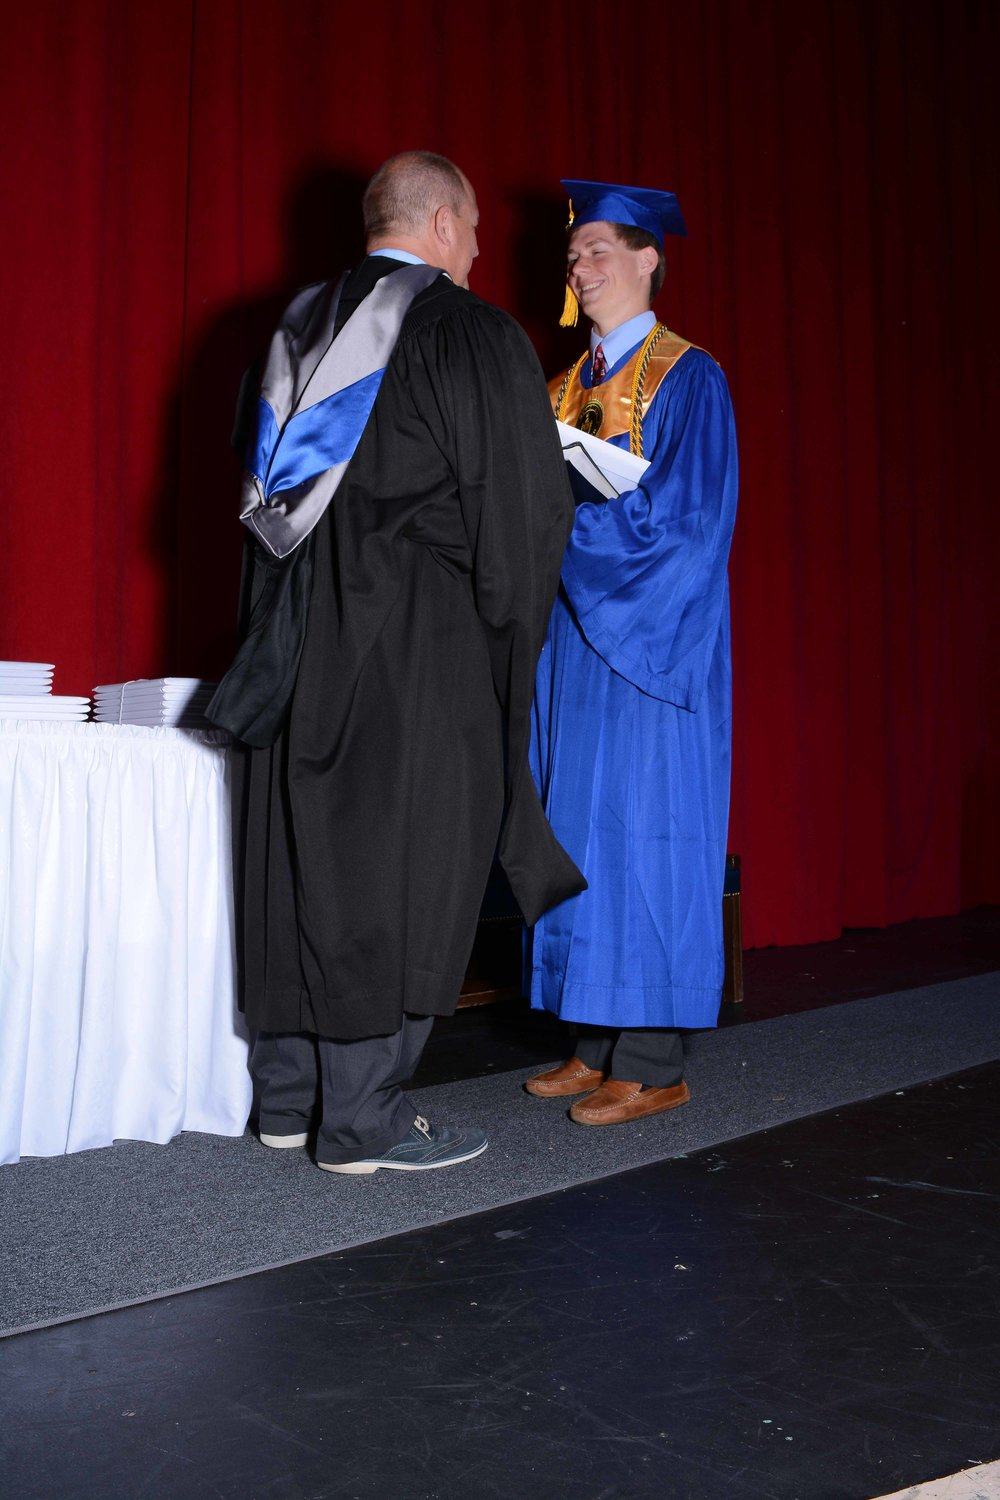 May14 Commencement137.jpg